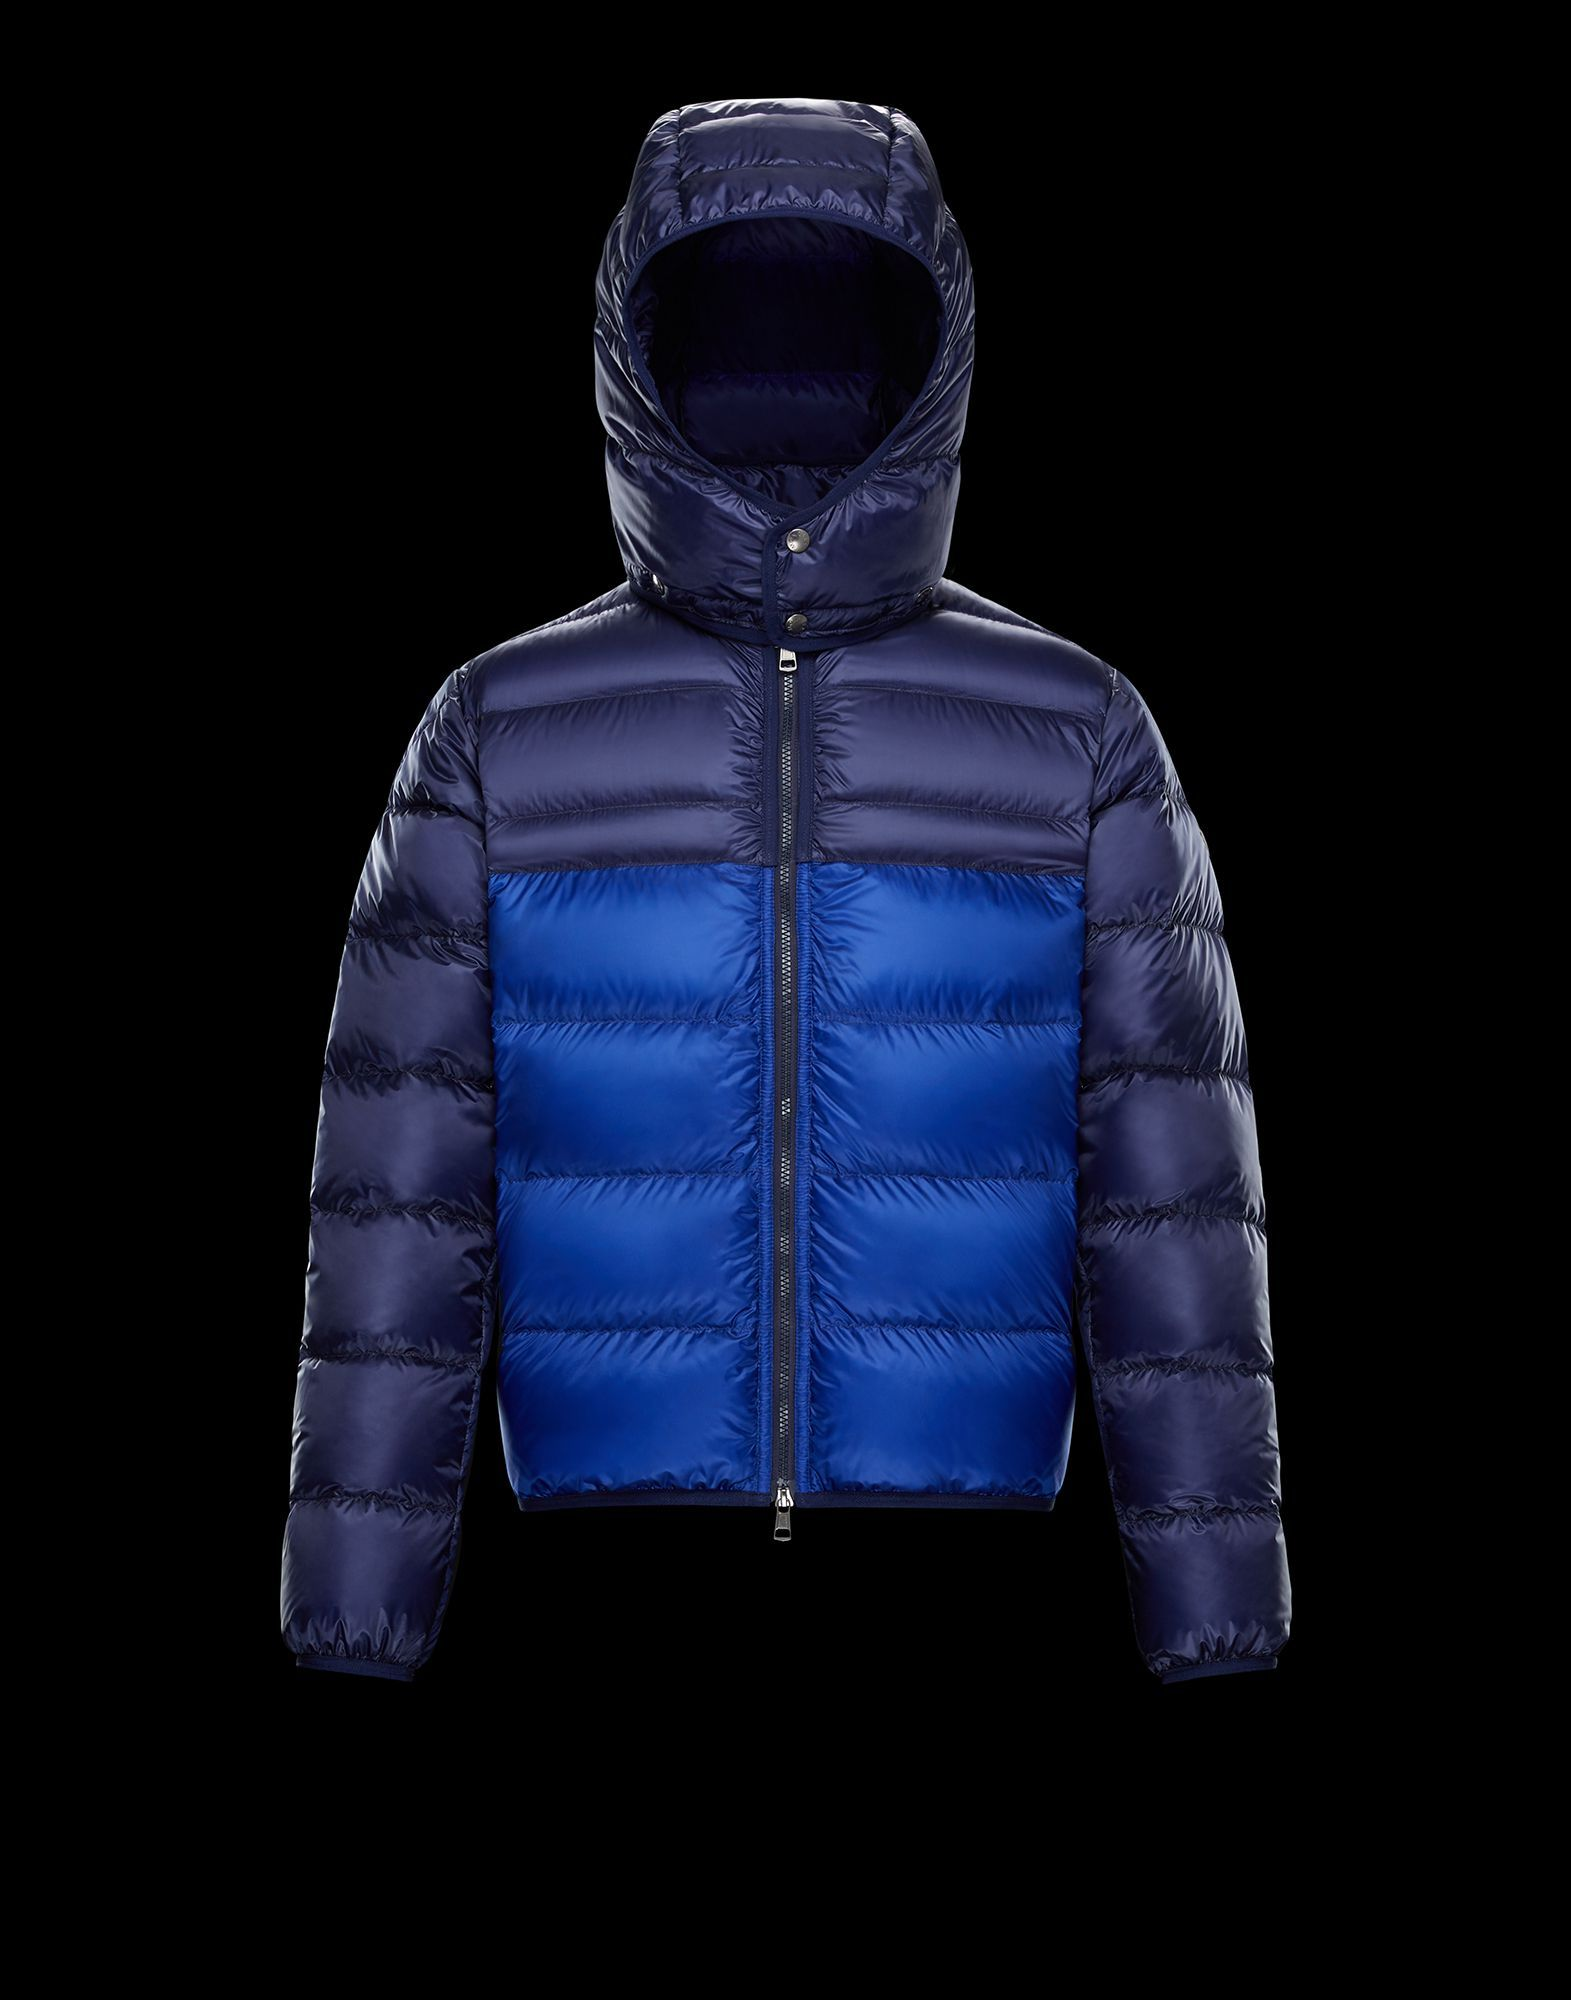 378bebcde Moncler BRECH in Outerwear for men  find out the product features ...